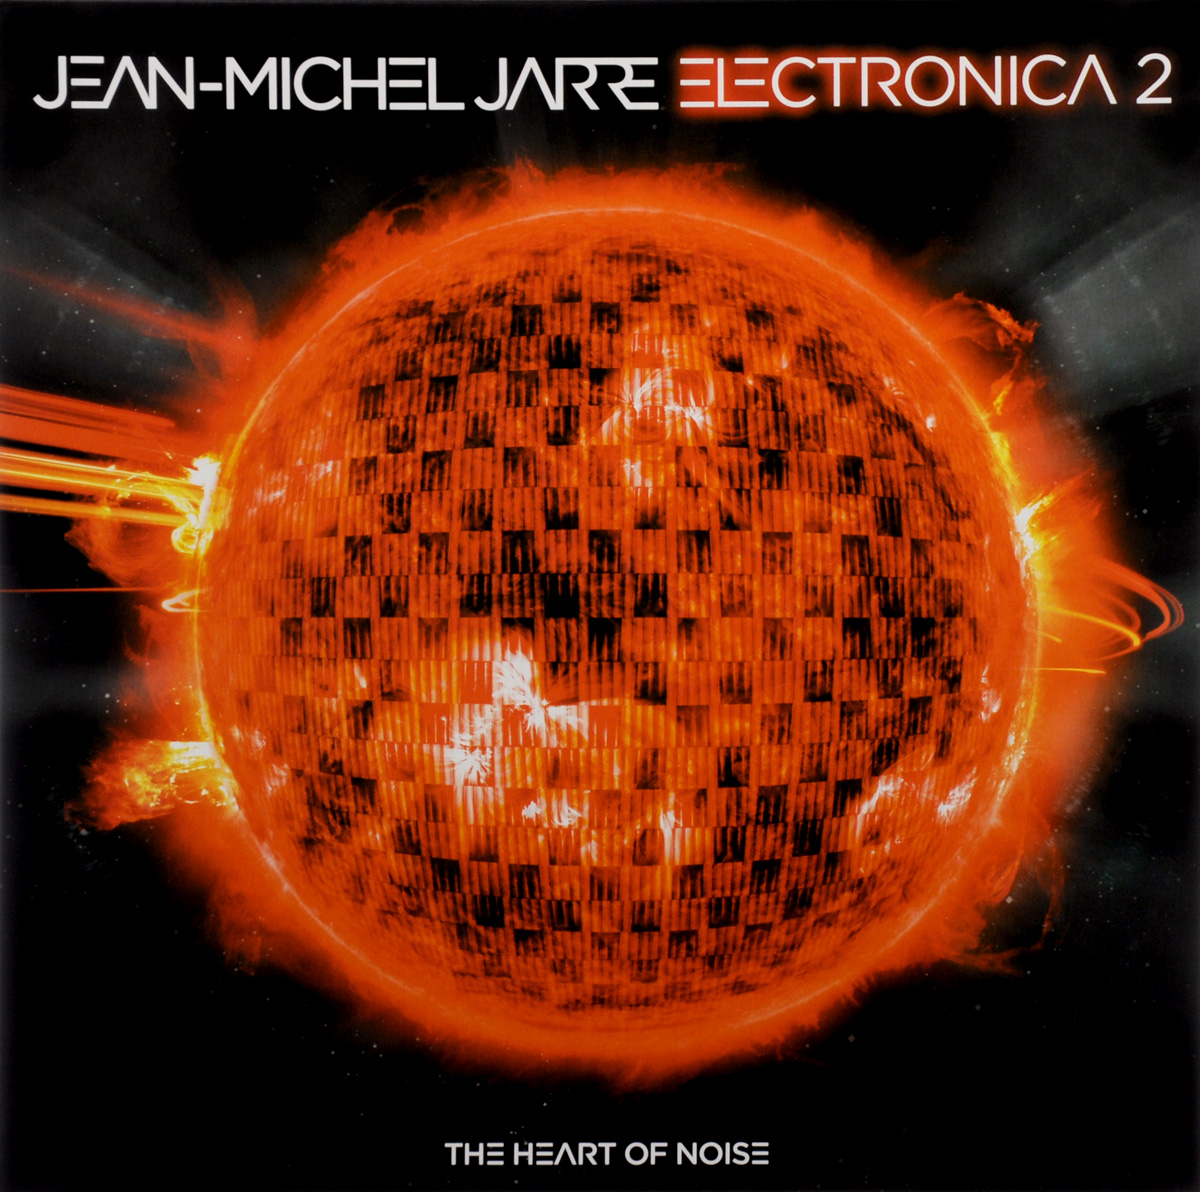 Жан-Мишель Жарр Jean-Michel Jarre. Electronica 2 - The Heart Of Noise (2 LP) jean michel jarre electronika 2 – the heart of noise cd